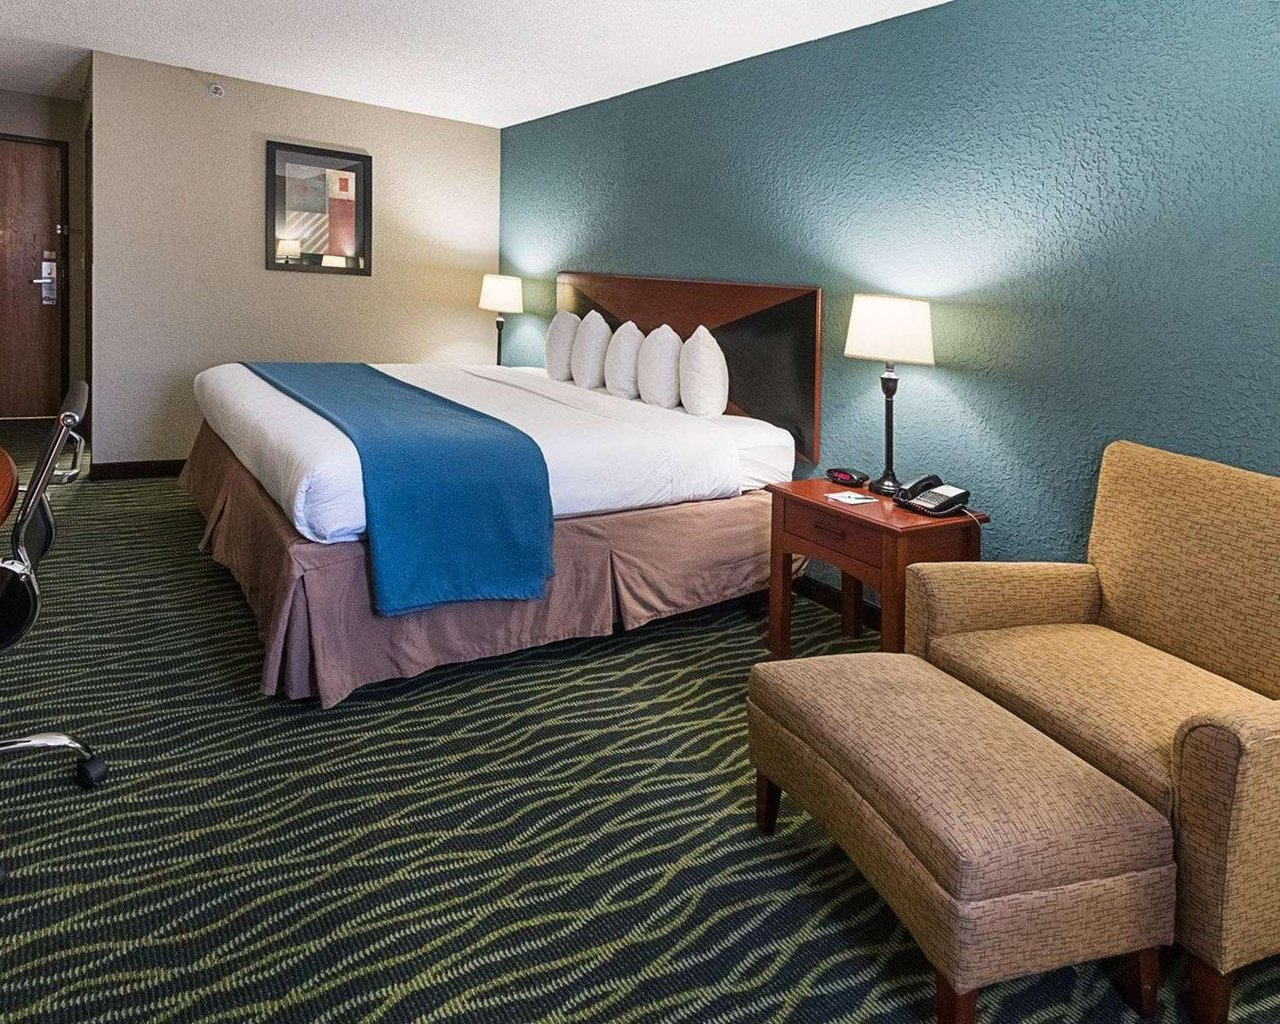 Quality Inn 75 86 Updated 2019 Prices Motel Reviews